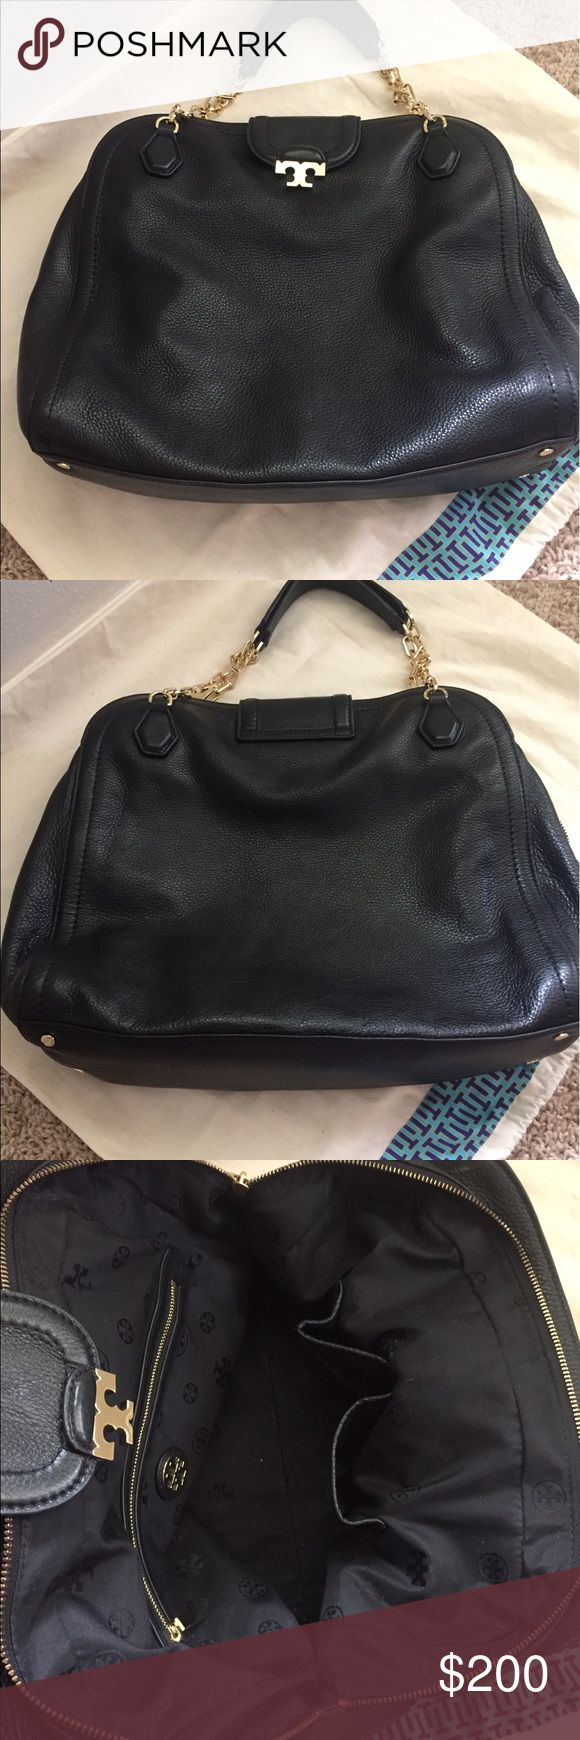 """Tory Burch Sammy Satchel gently used Tory Burch Sammy satchel in black. Comes with dust bag. Measures 11"""" H x 14"""" W x 5 1/2"""" D. Tory Burch Bags Shoulder Bags"""